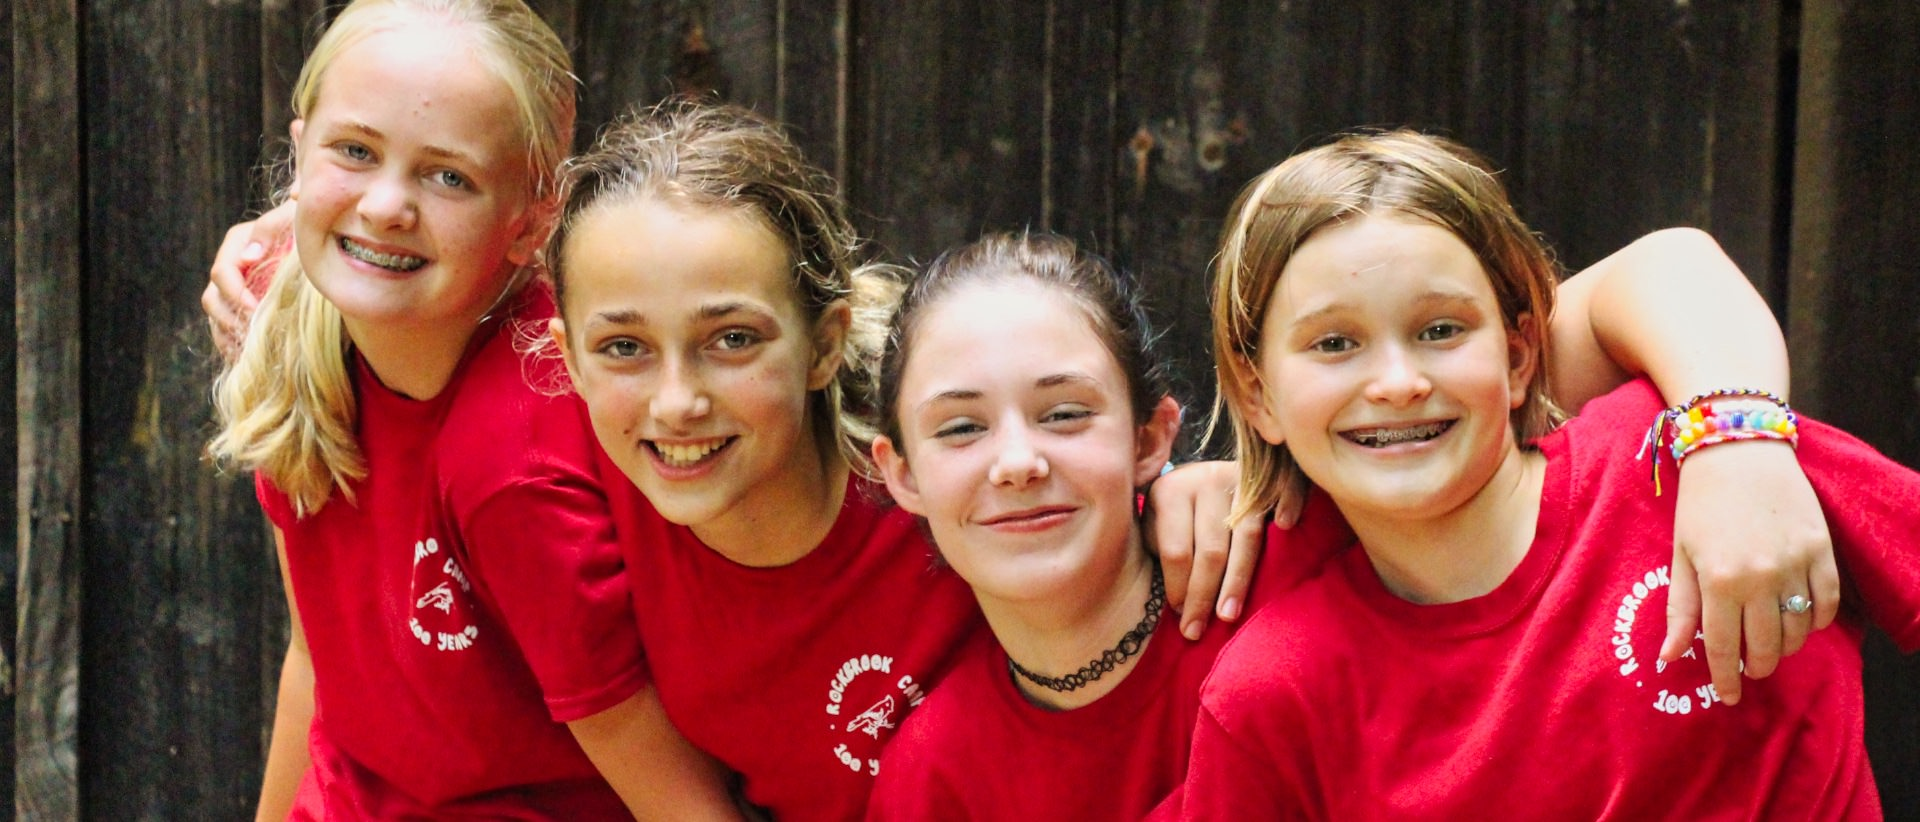 camp girls dressed all in red